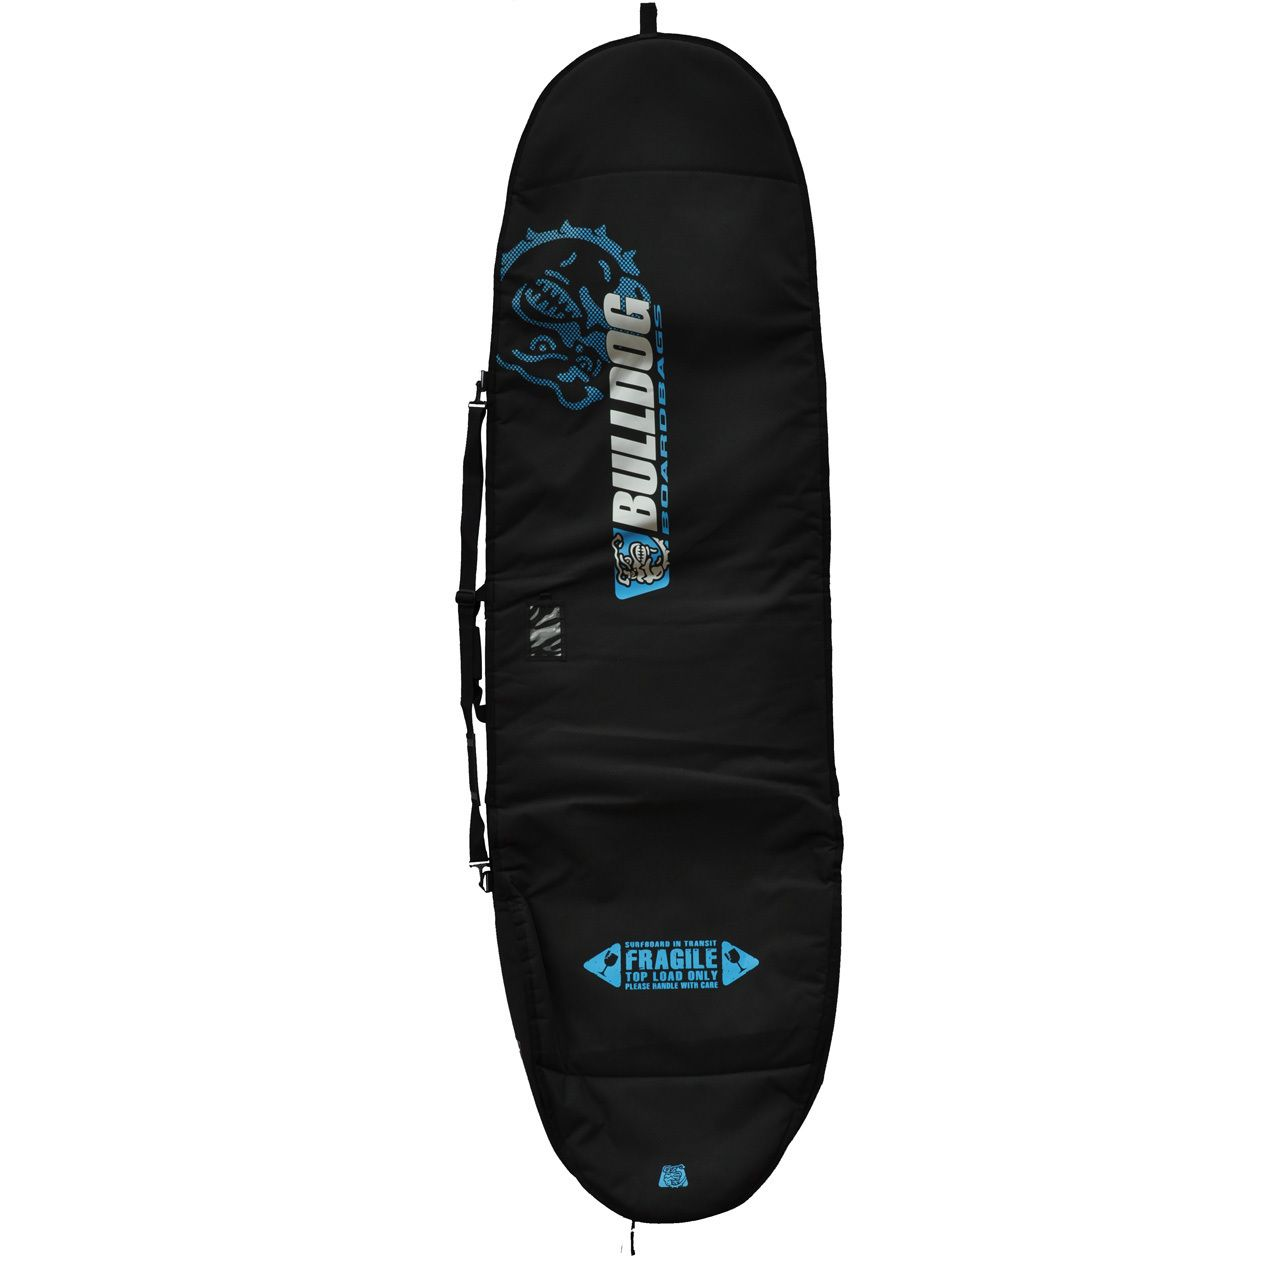 8d9bbf82e380 The Bulldog longboard boardbag will carry and protect surfboard upto 9 ft 1  long from dings when travelling